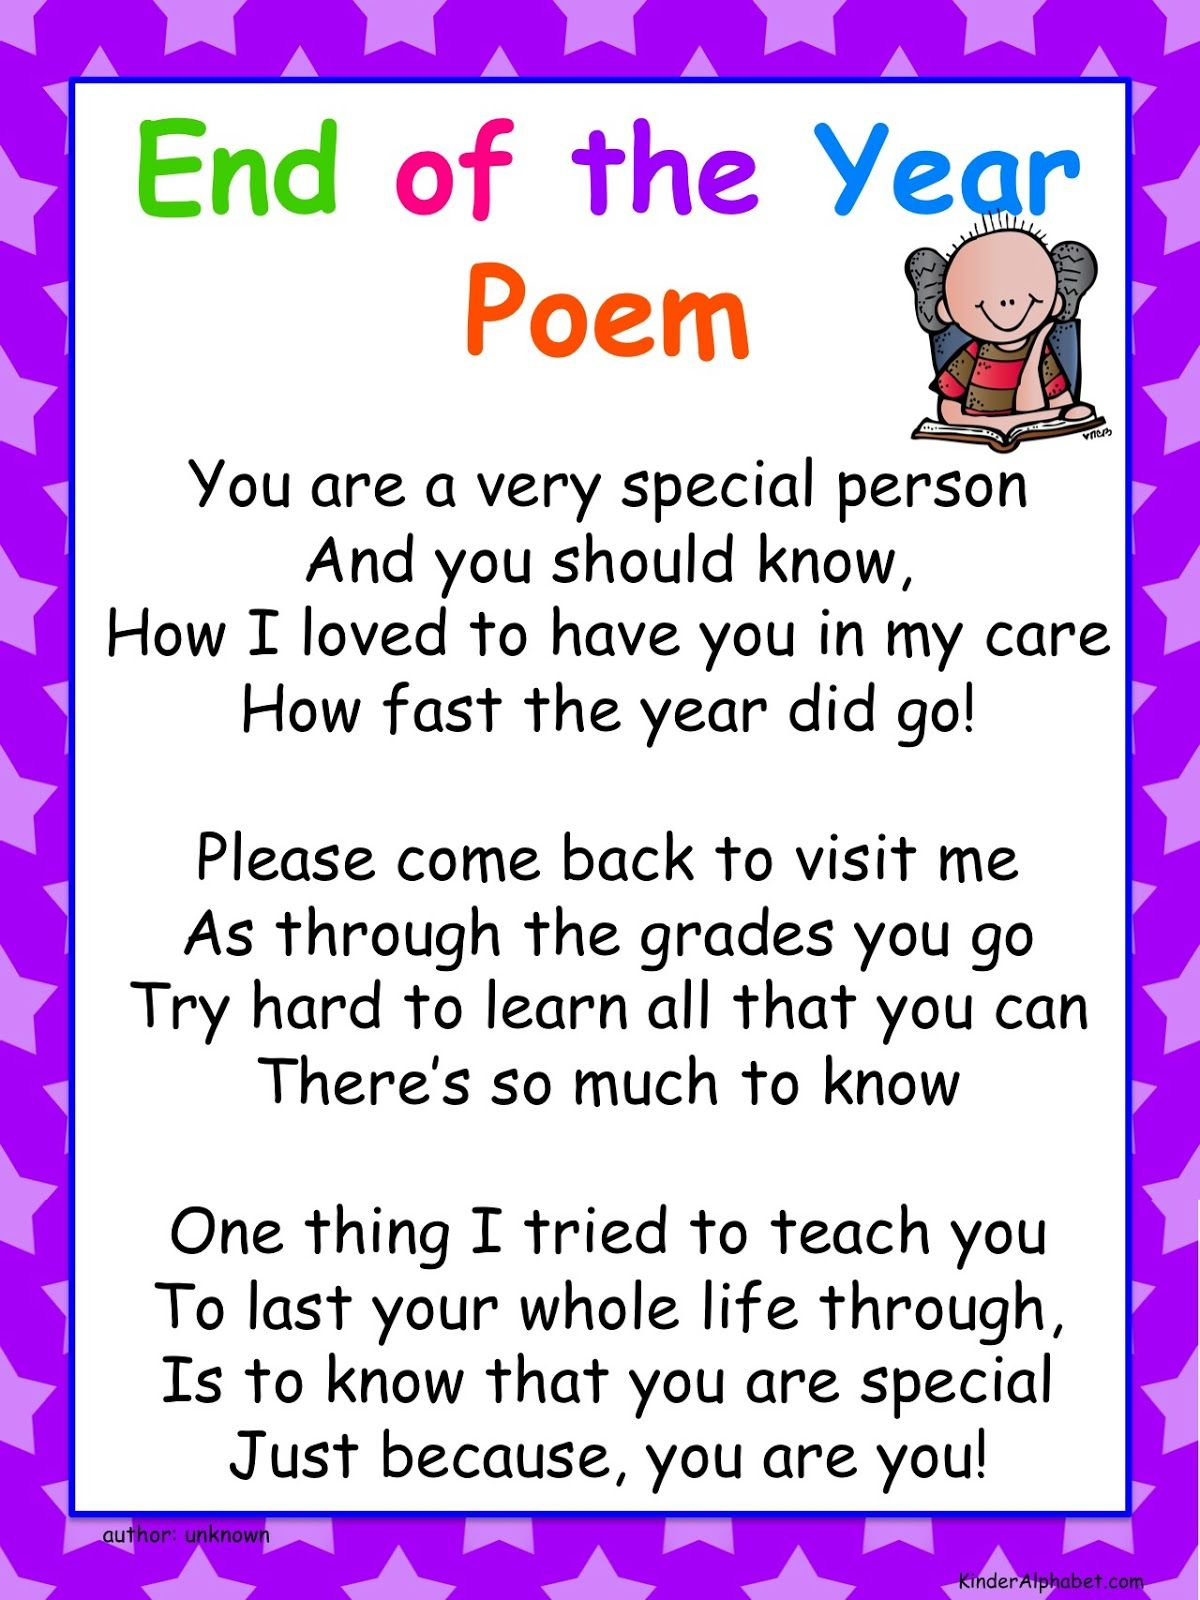 Who s who and who s new i am poems a fun end of the year activity - End Of The Year Activities Free End Of The Year Poem